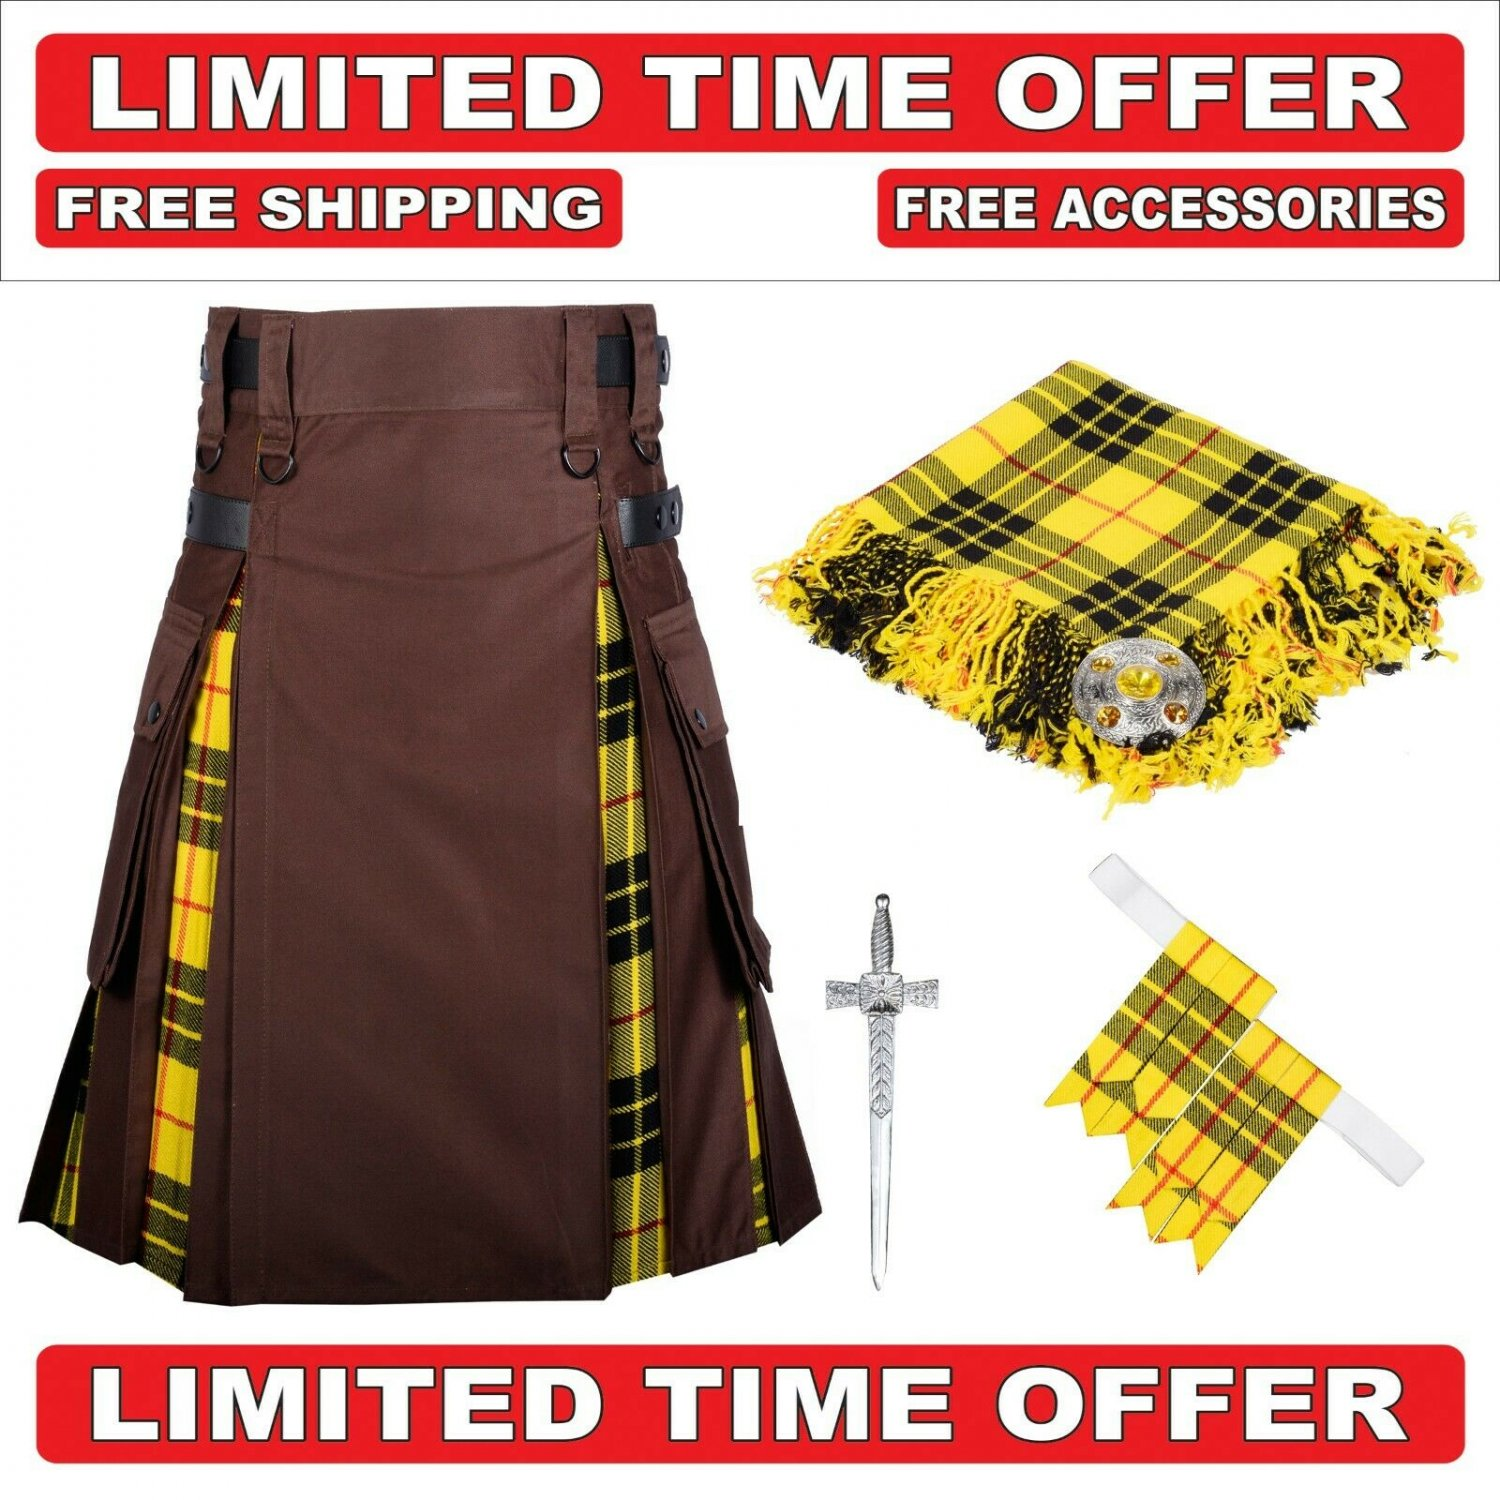 50 size Brown Cotton Macleod Tartan Hybrid Utility Kilt For Men-Free Accessories-Free Shipping